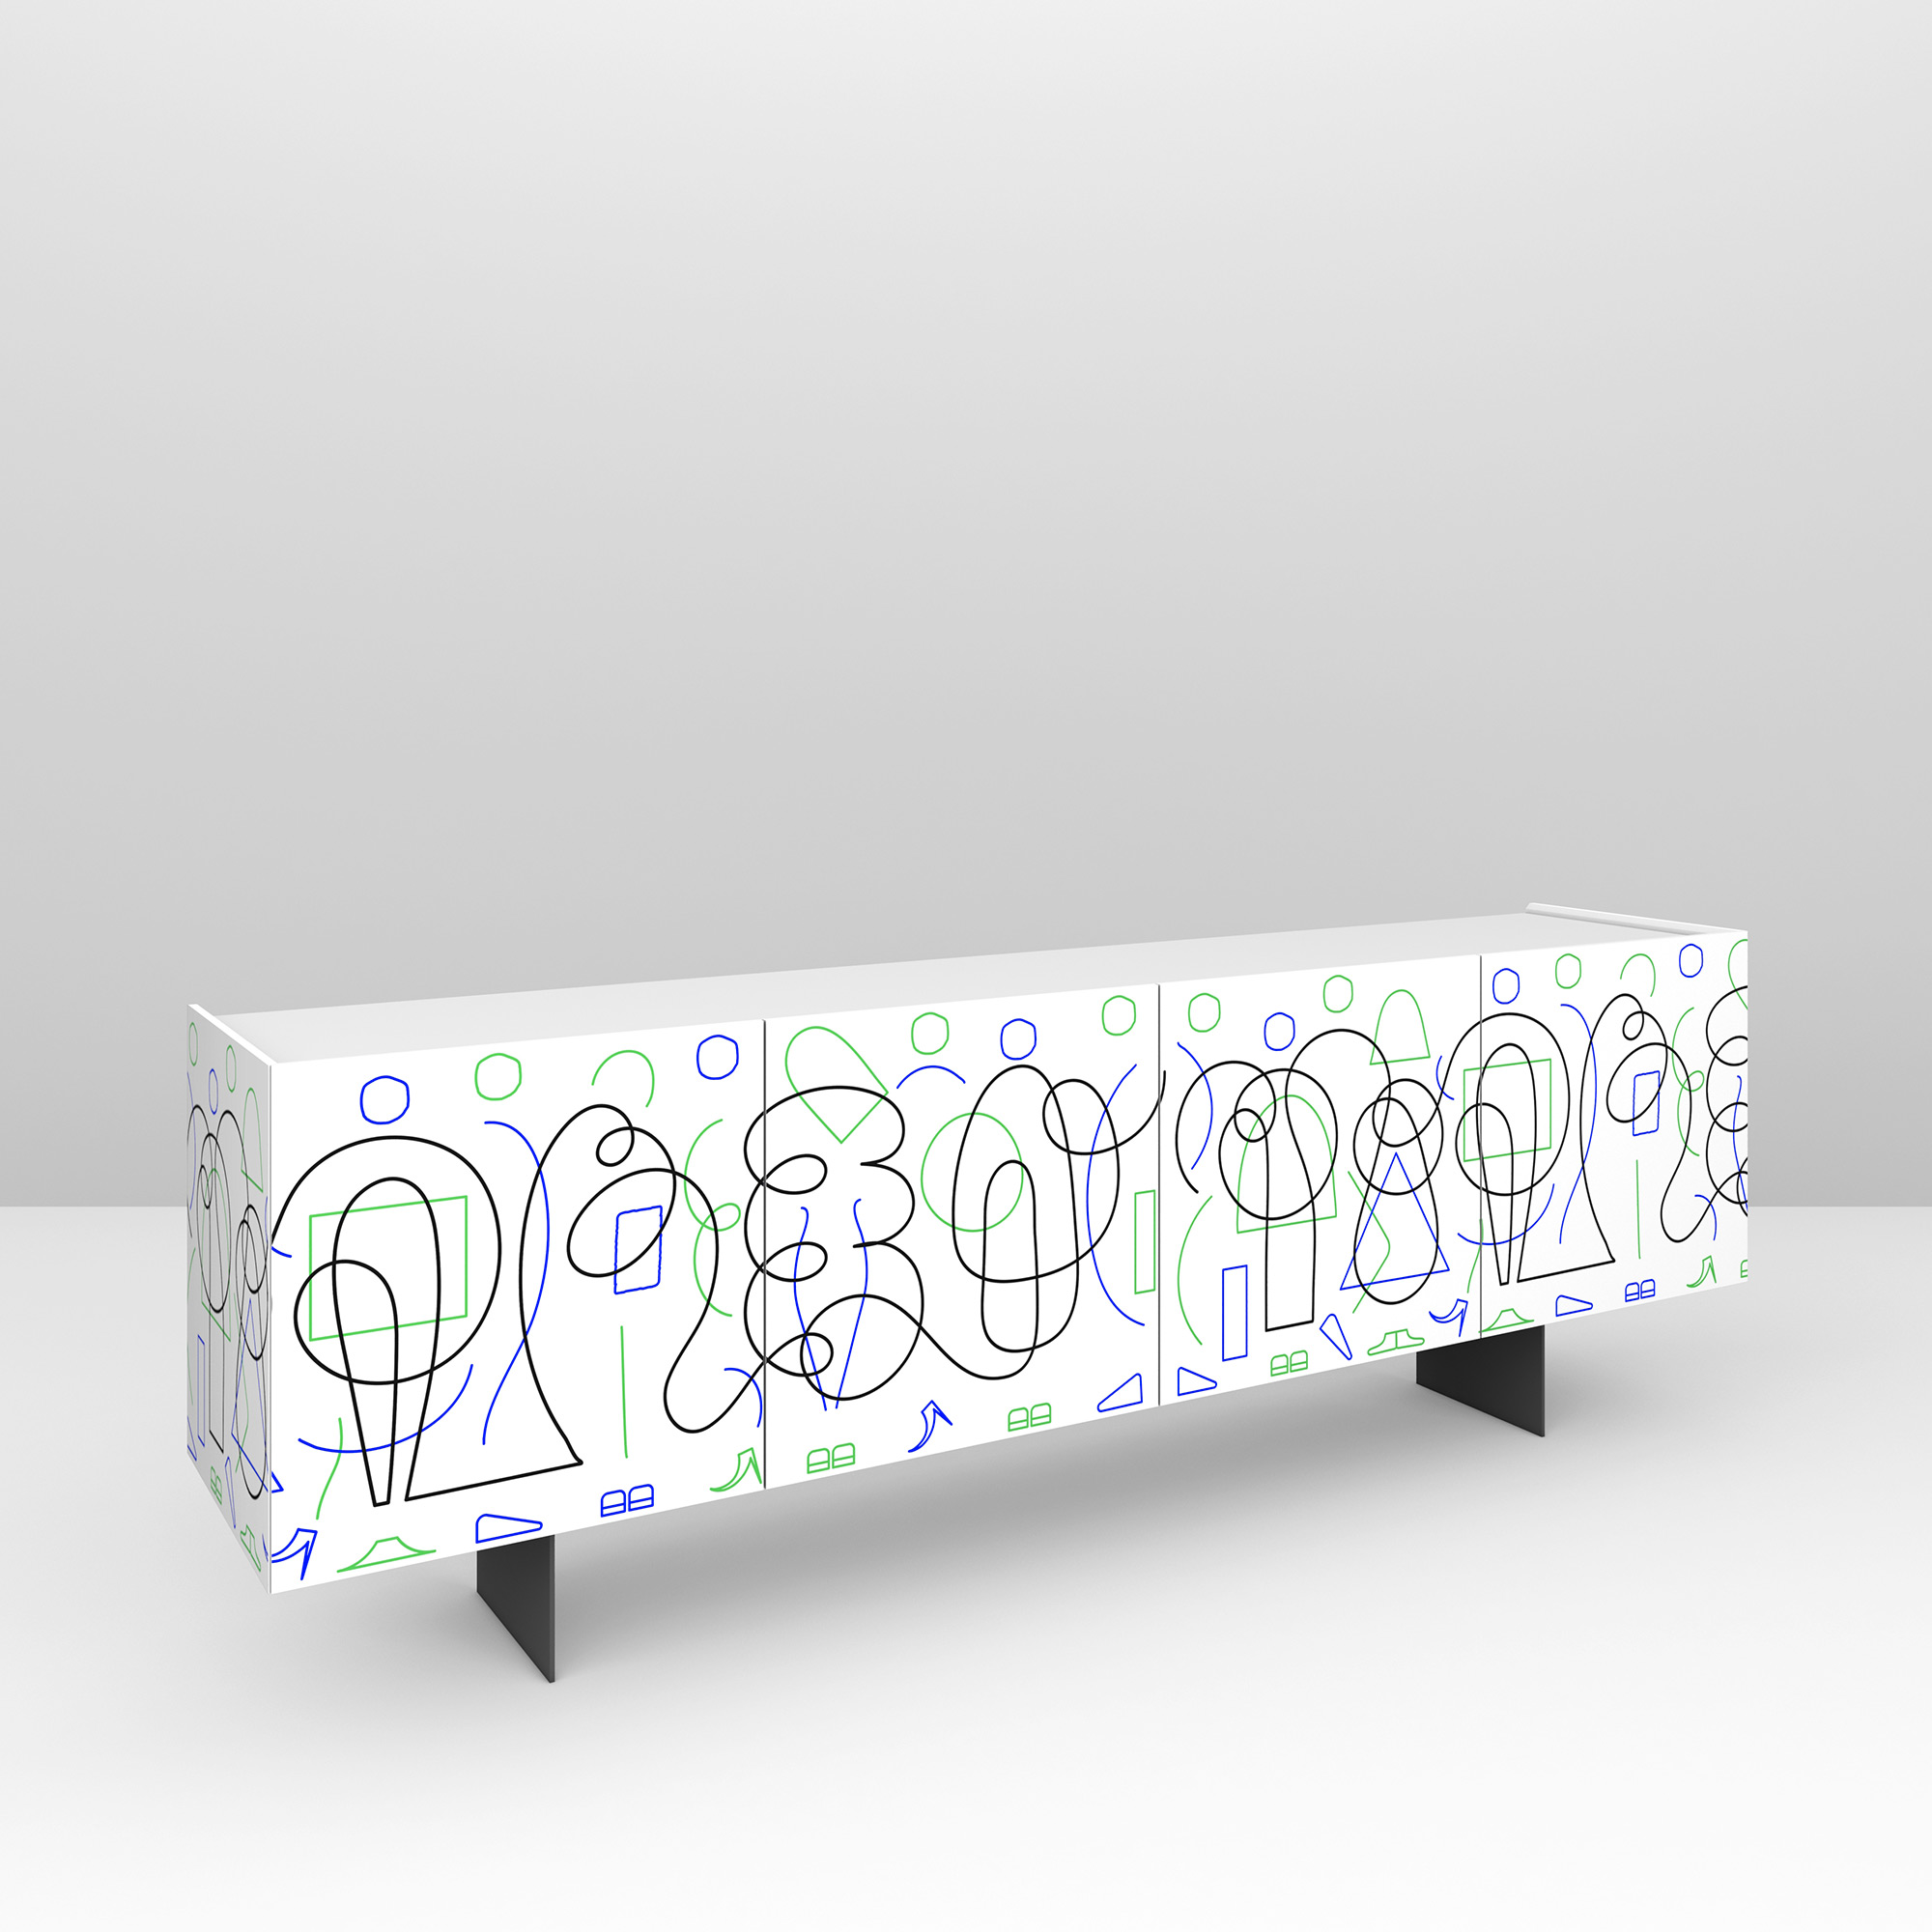 Pictoom Furniture Art Marogna Graphic Illustrator Furnishings Jonathan Calugi